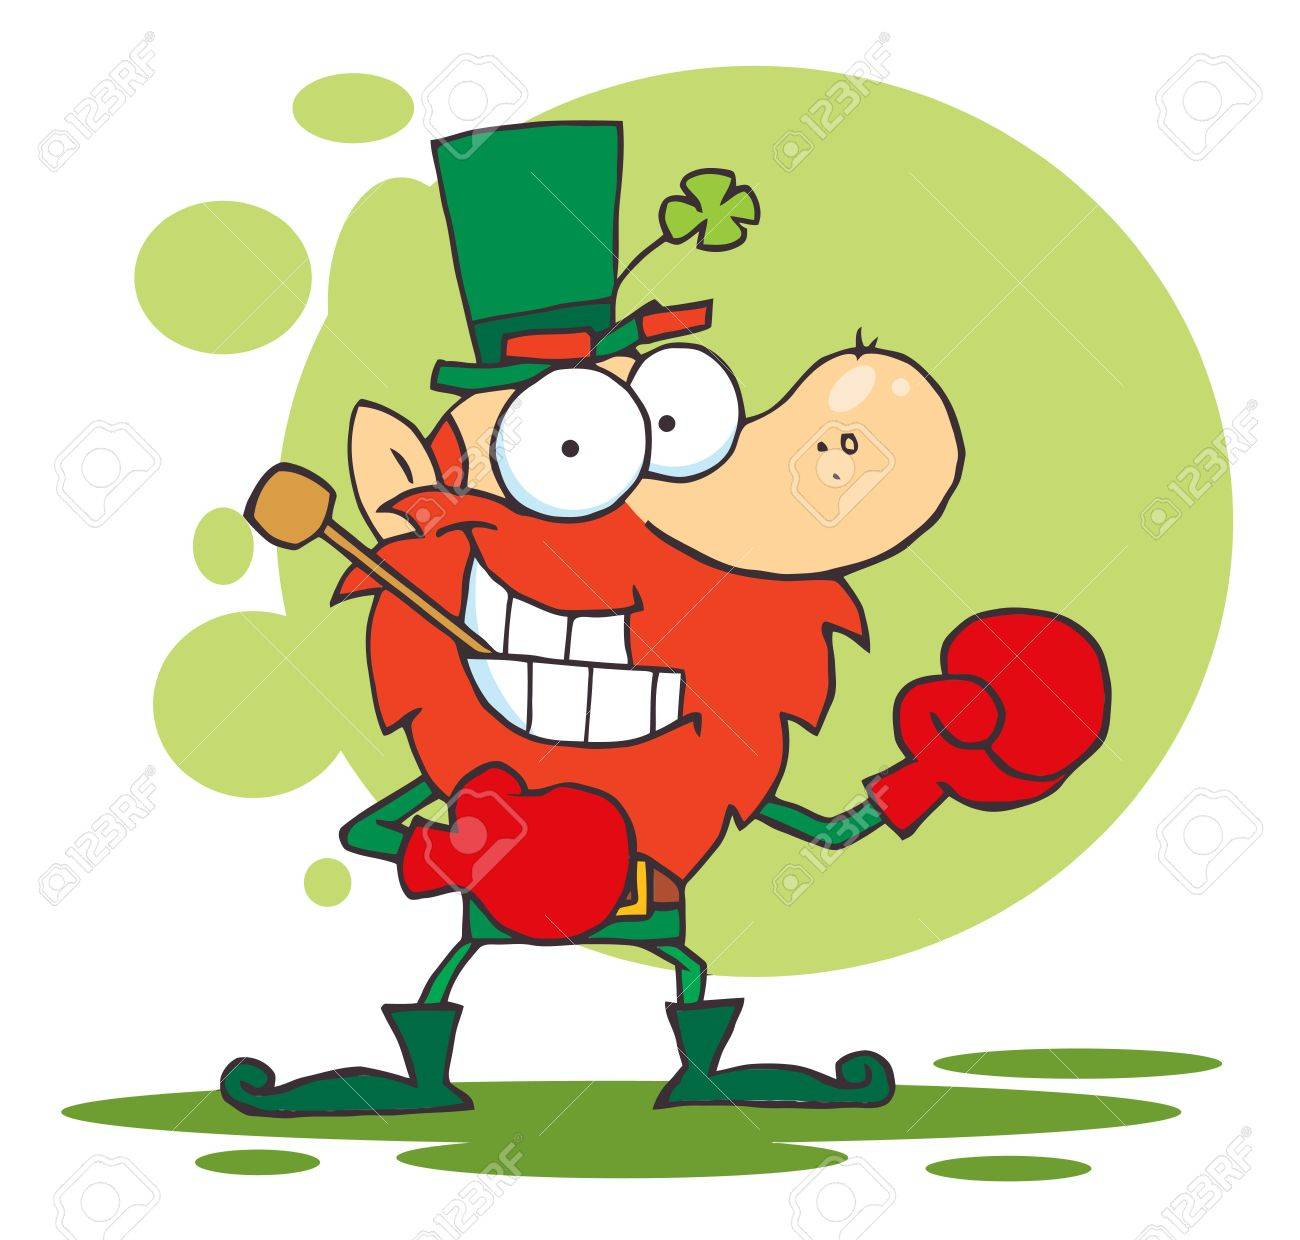 Boxing Leprechaun With A Pipe In His Mouth Stock Vector - 6906076